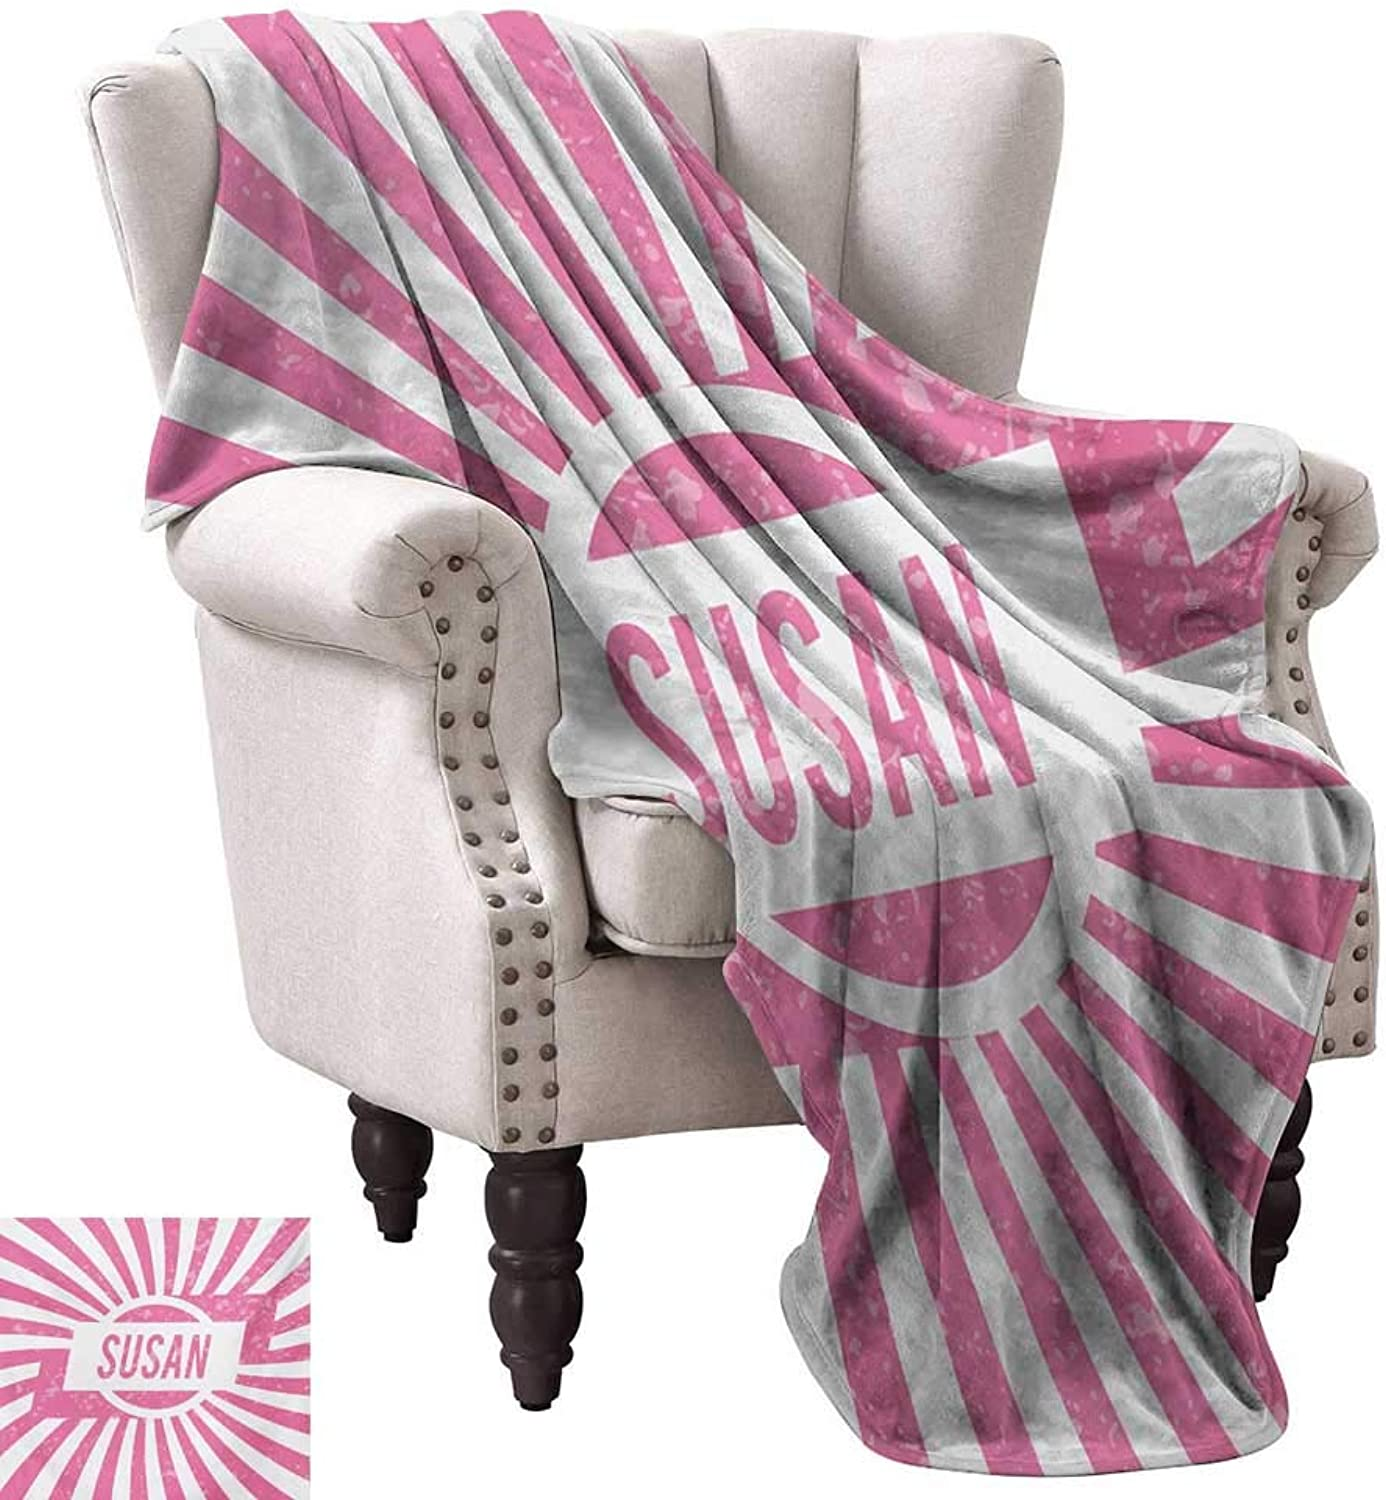 Anyangeight Digital Printing Blanket,Female Name with Grunge Effect Birthday Girl Celebration Striped Backdrop 70 x60 ,Super Soft and Comfortable,Suitable for Sofas,Chairs,beds